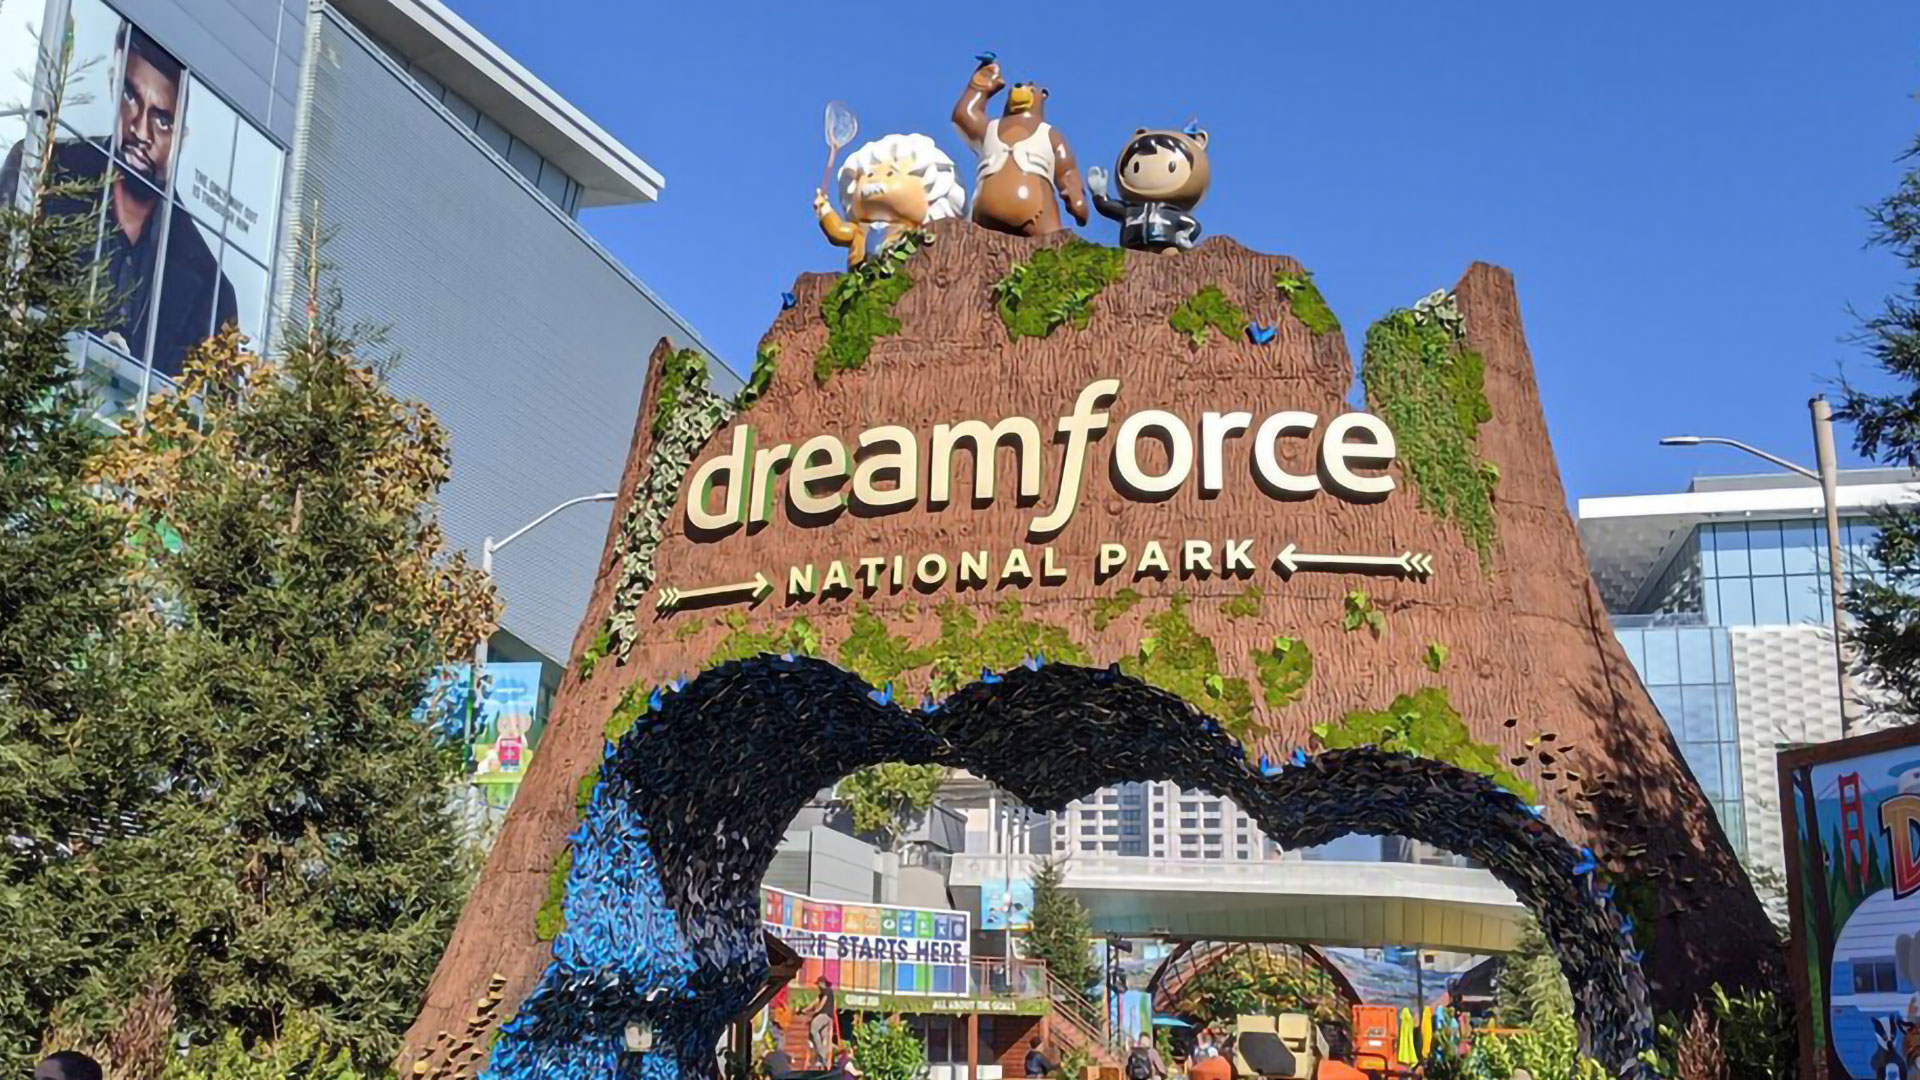 The-Top-5-Biggest-Surprises-at-Dreamforce-2019